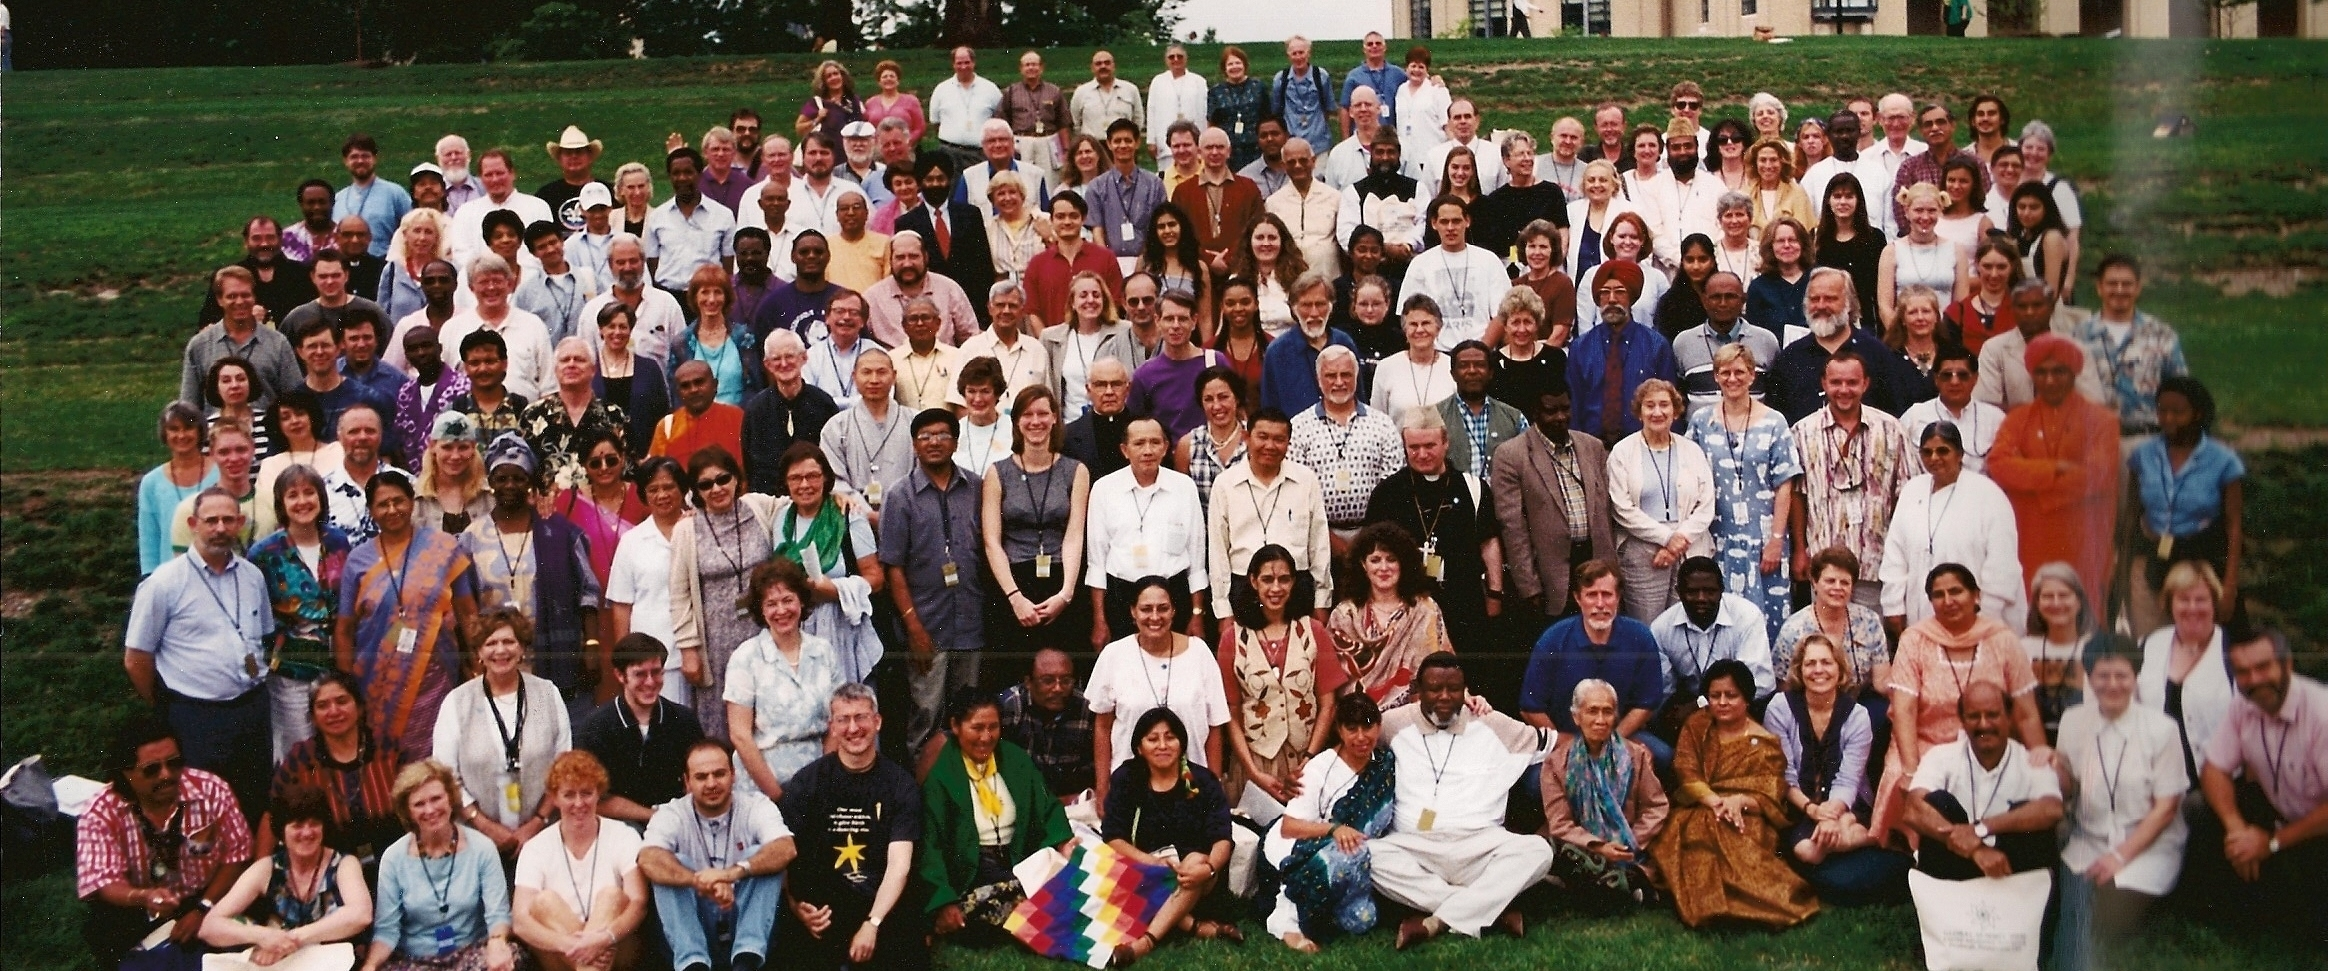 2000.06 Charter Signing Stanford Summit.Group photo (1) cropped